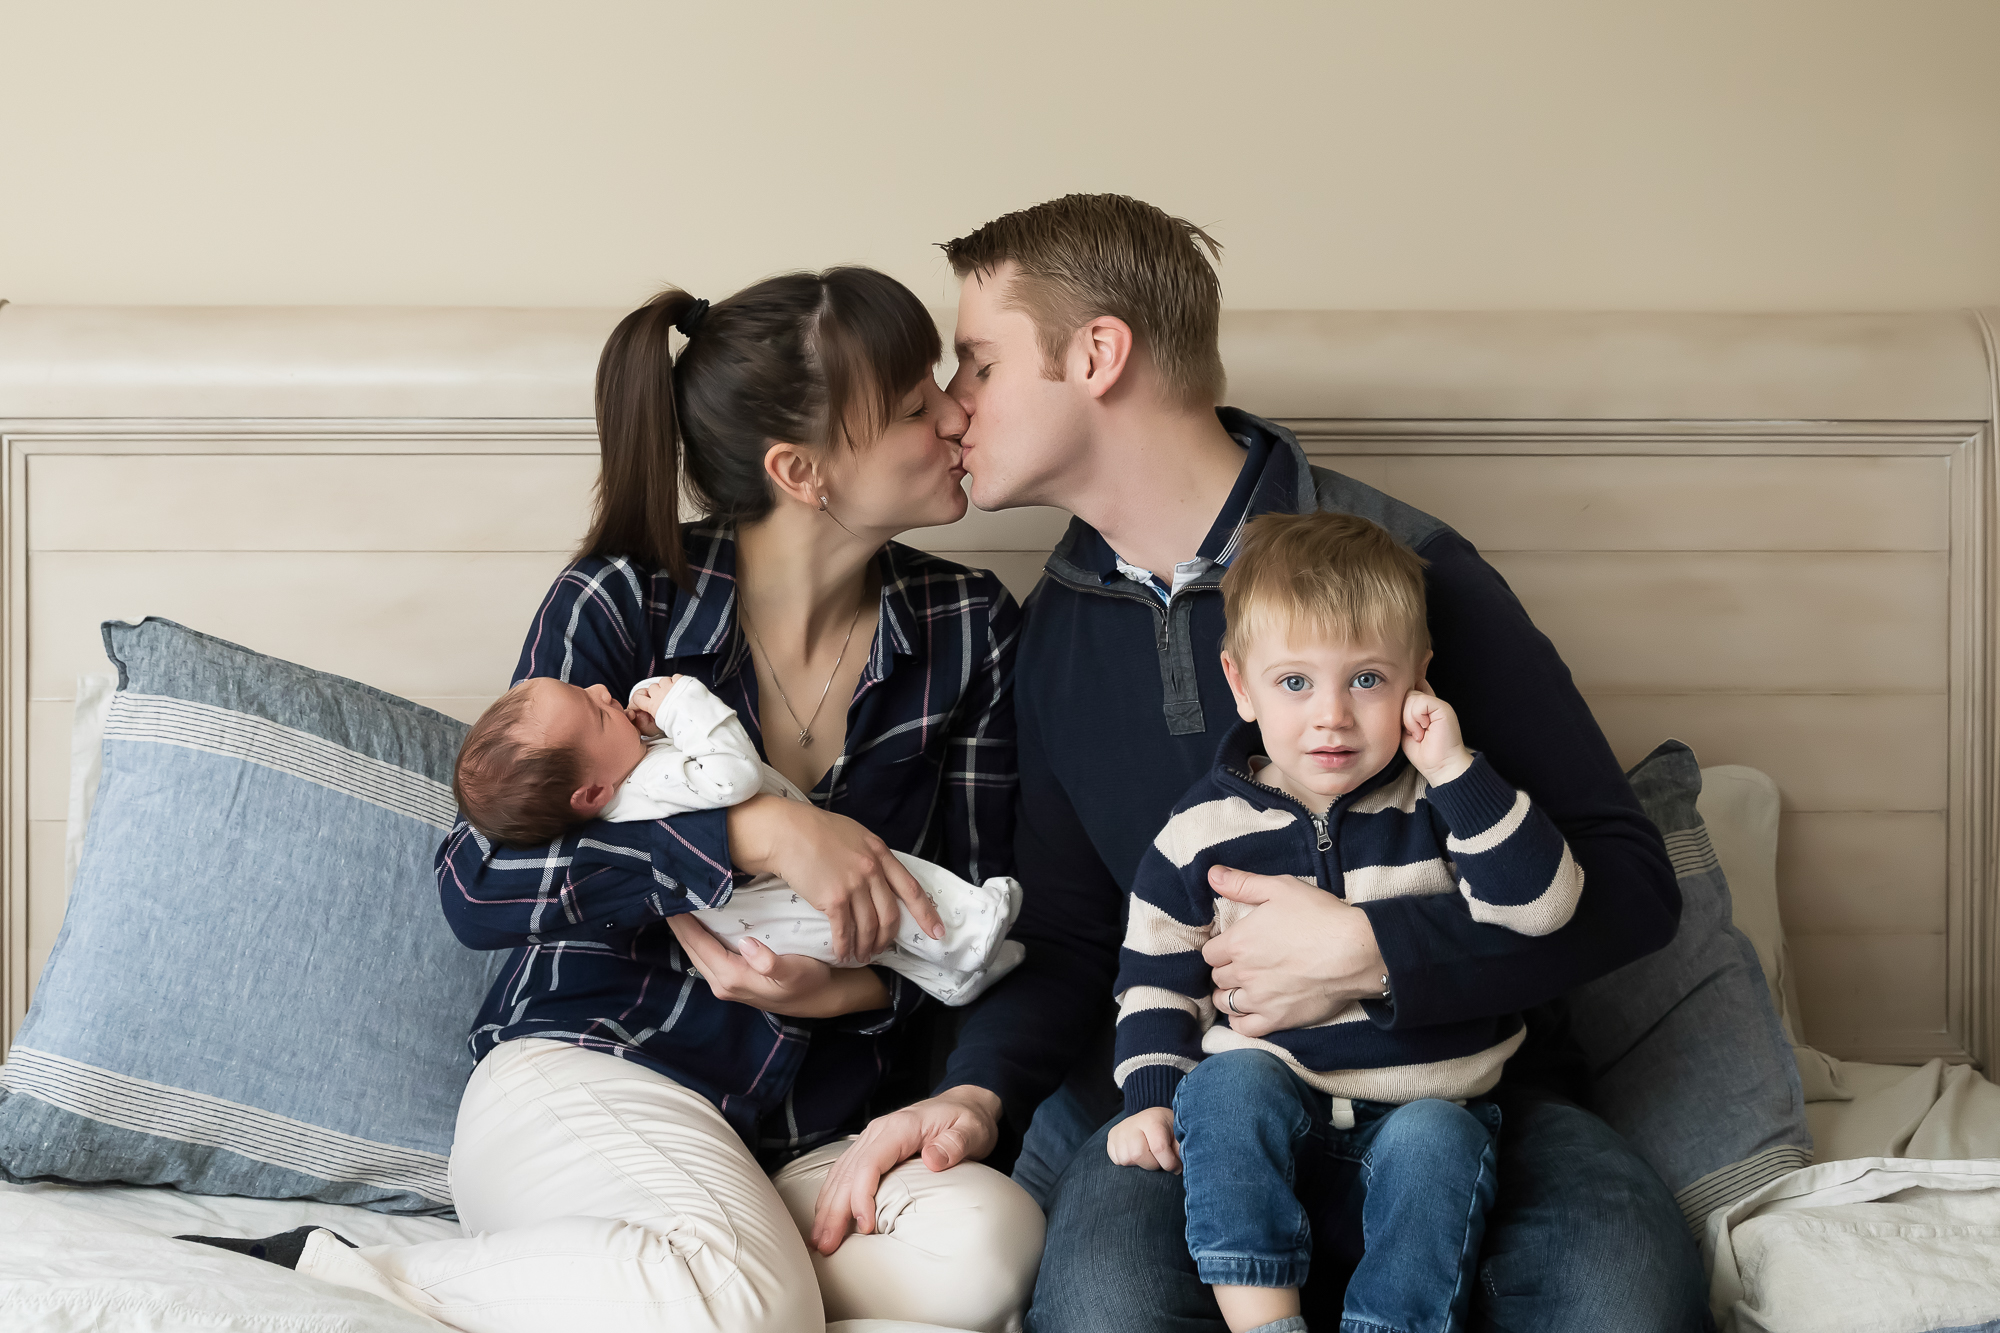 Ann Arbor Newborn Photographer   Just in Time for Christmas!